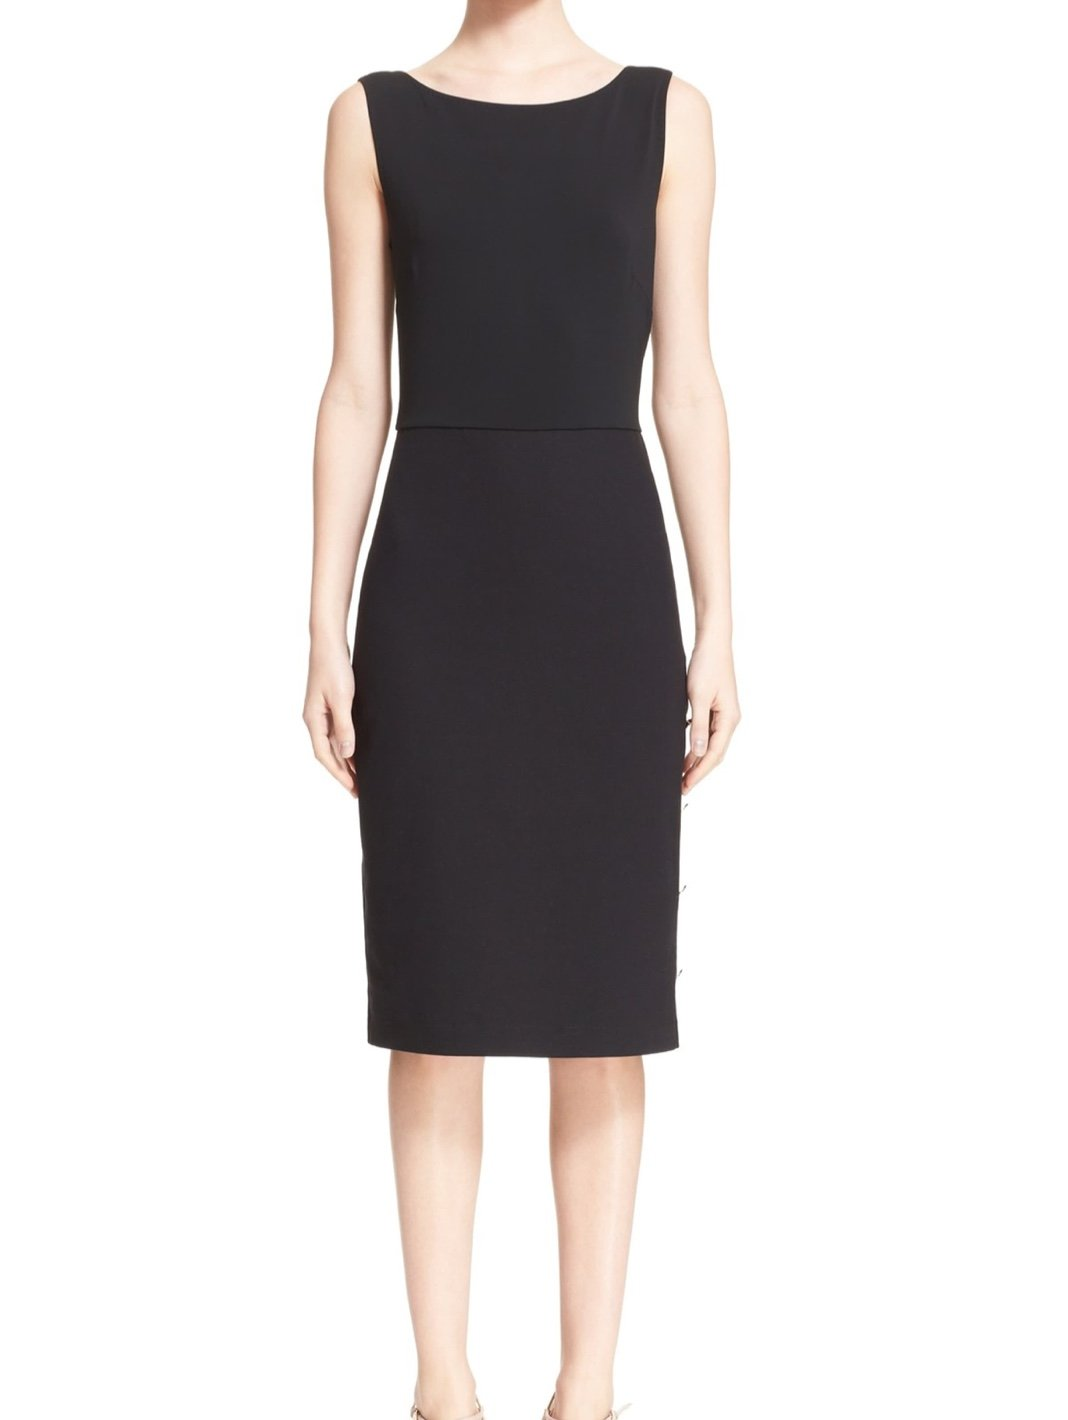 Bassano Jersey Sheath Dress - The Bobby Boga